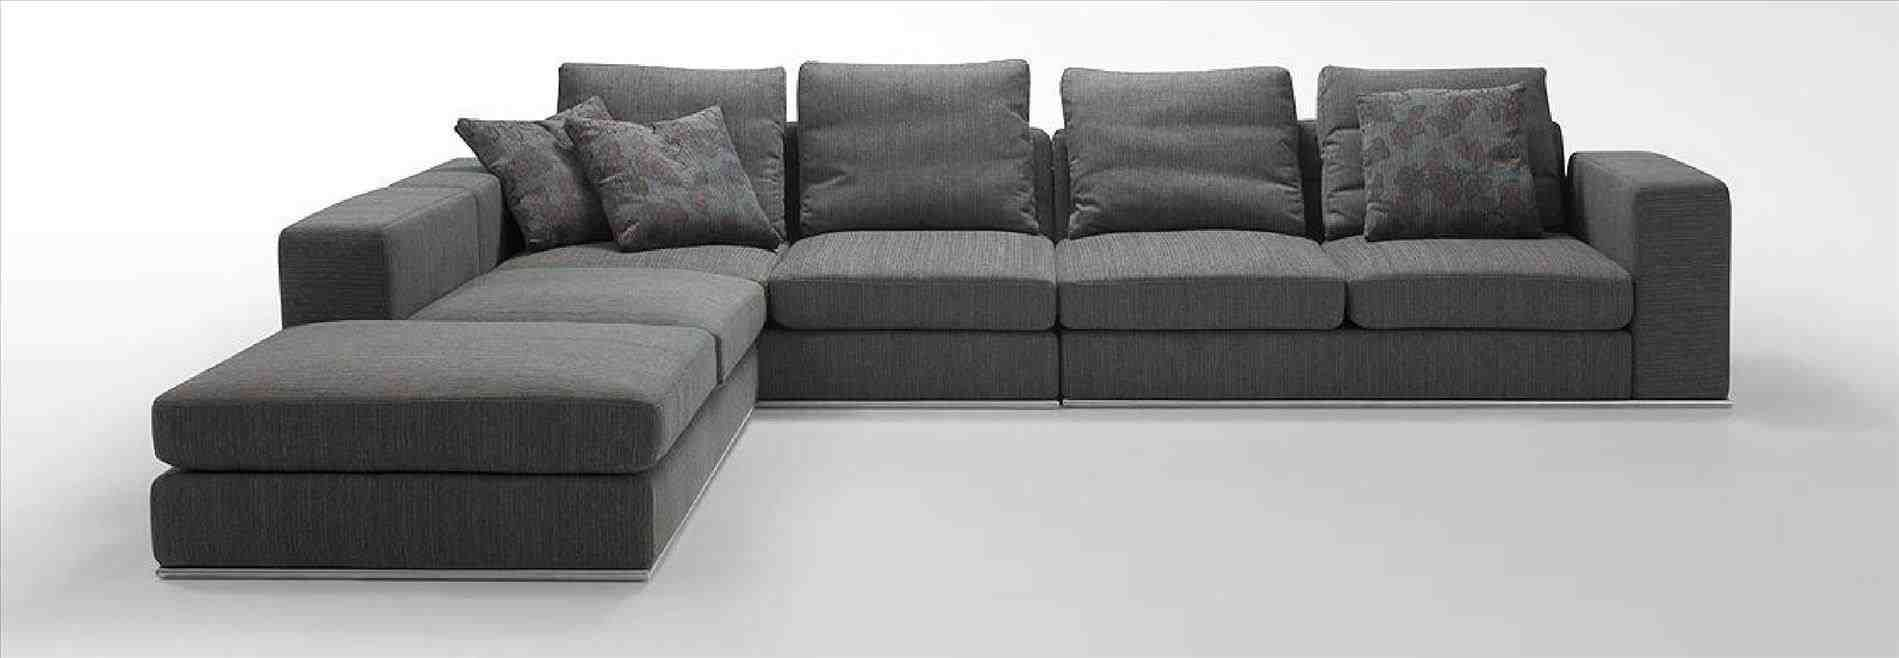 Cheap Sectionals Vancouver - apartment size couches full of ...